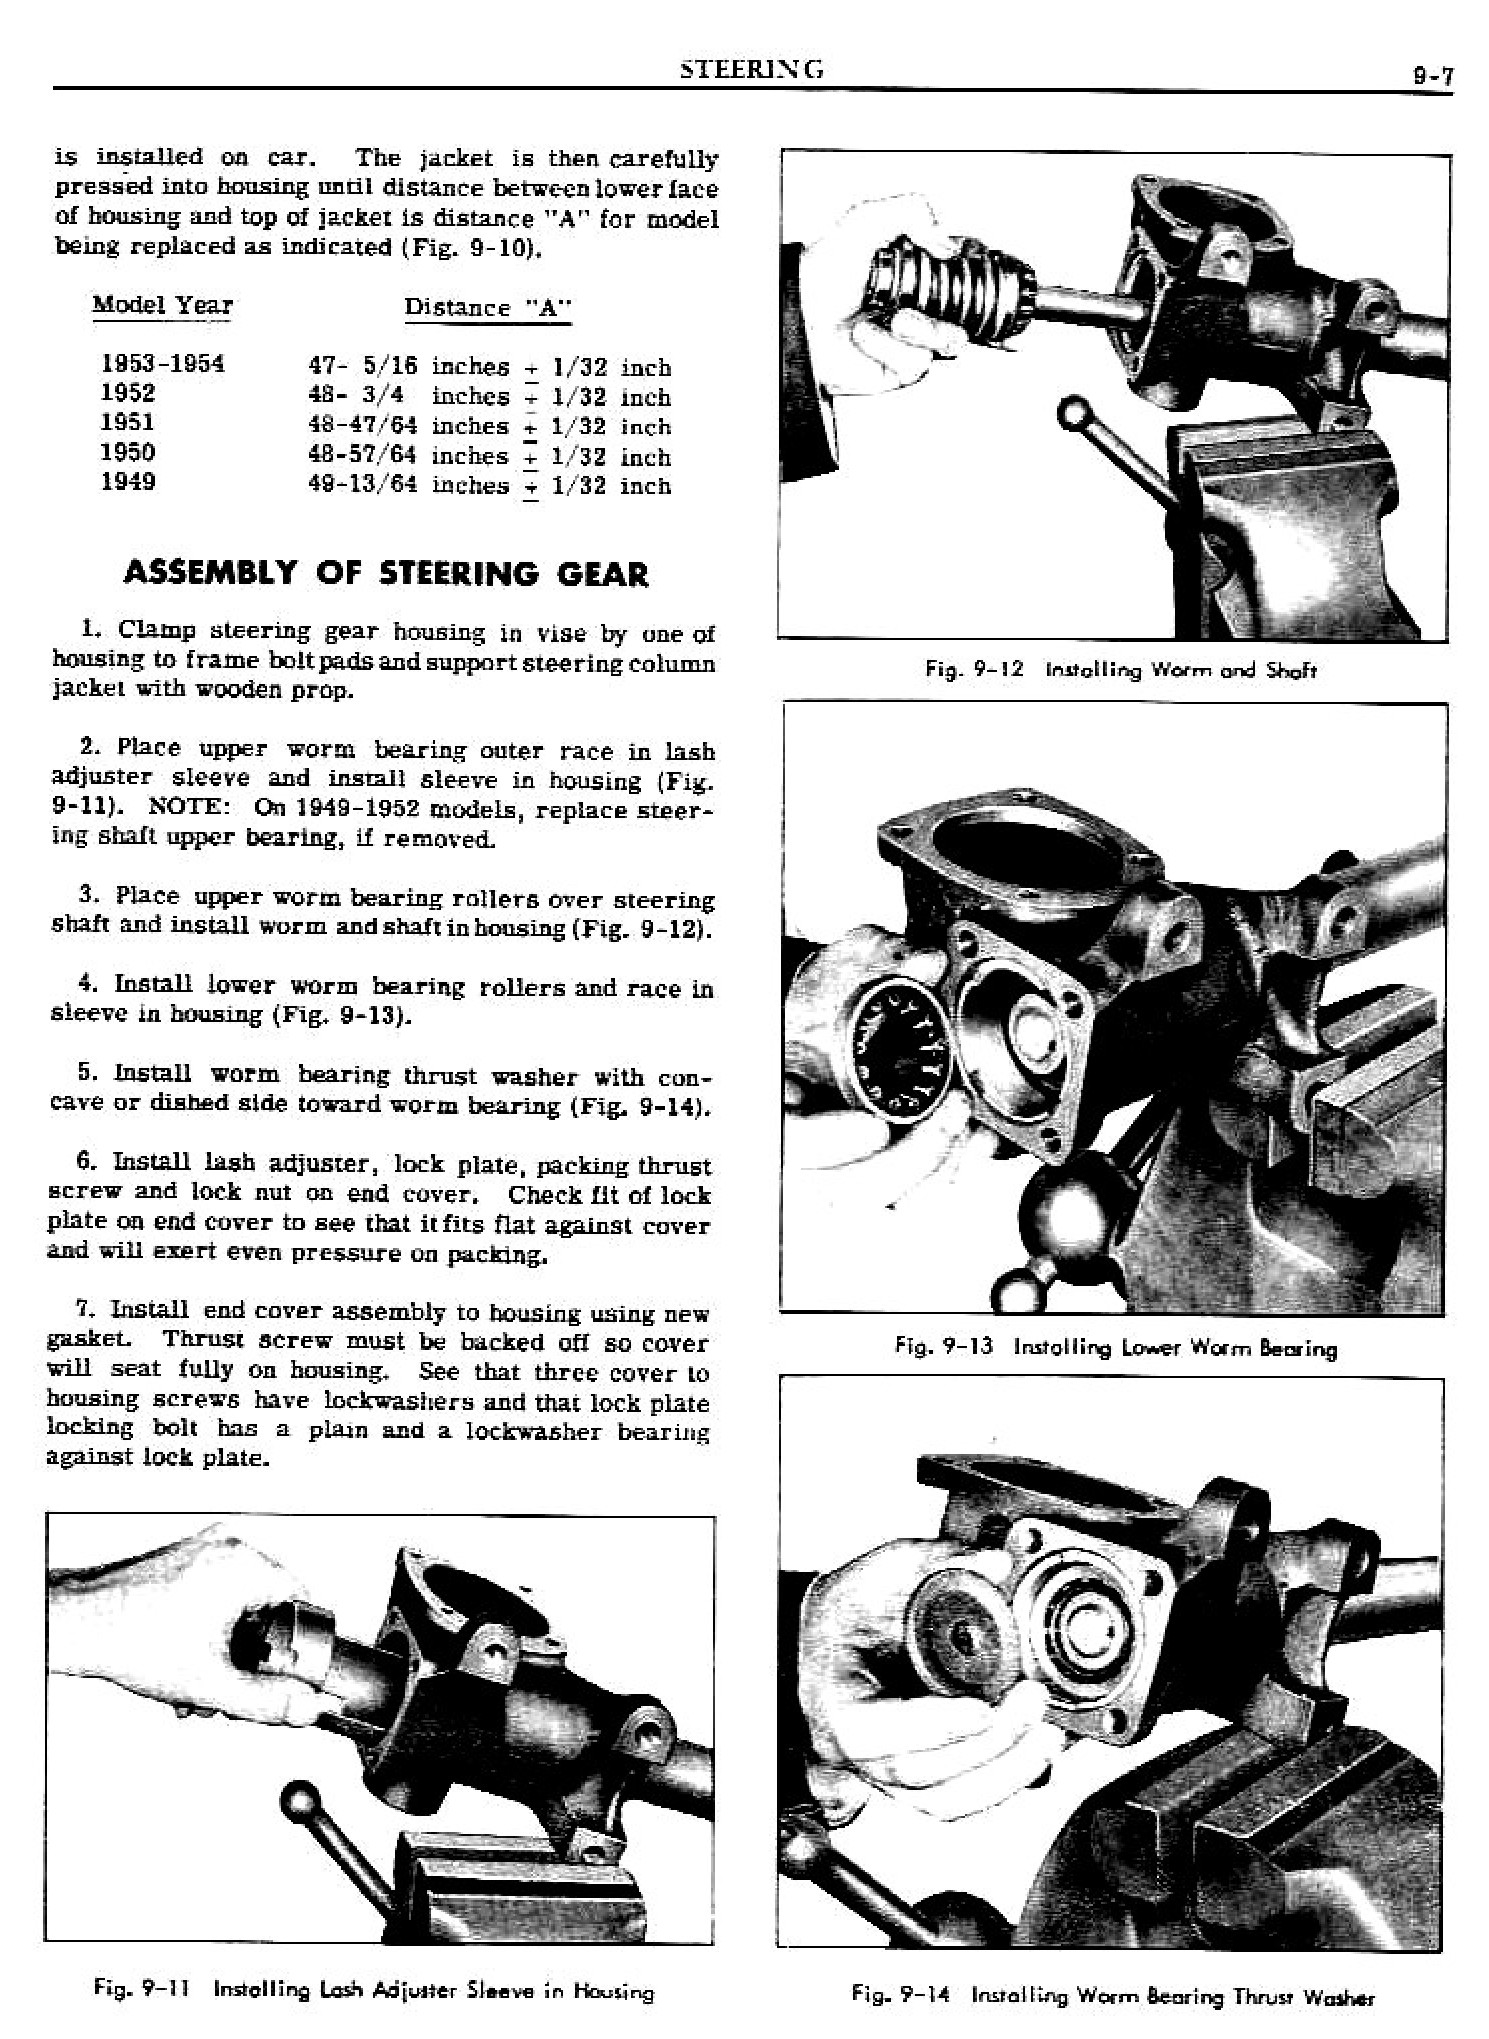 1949 Pontiac Shop Manual- Steering Page 7 of 31